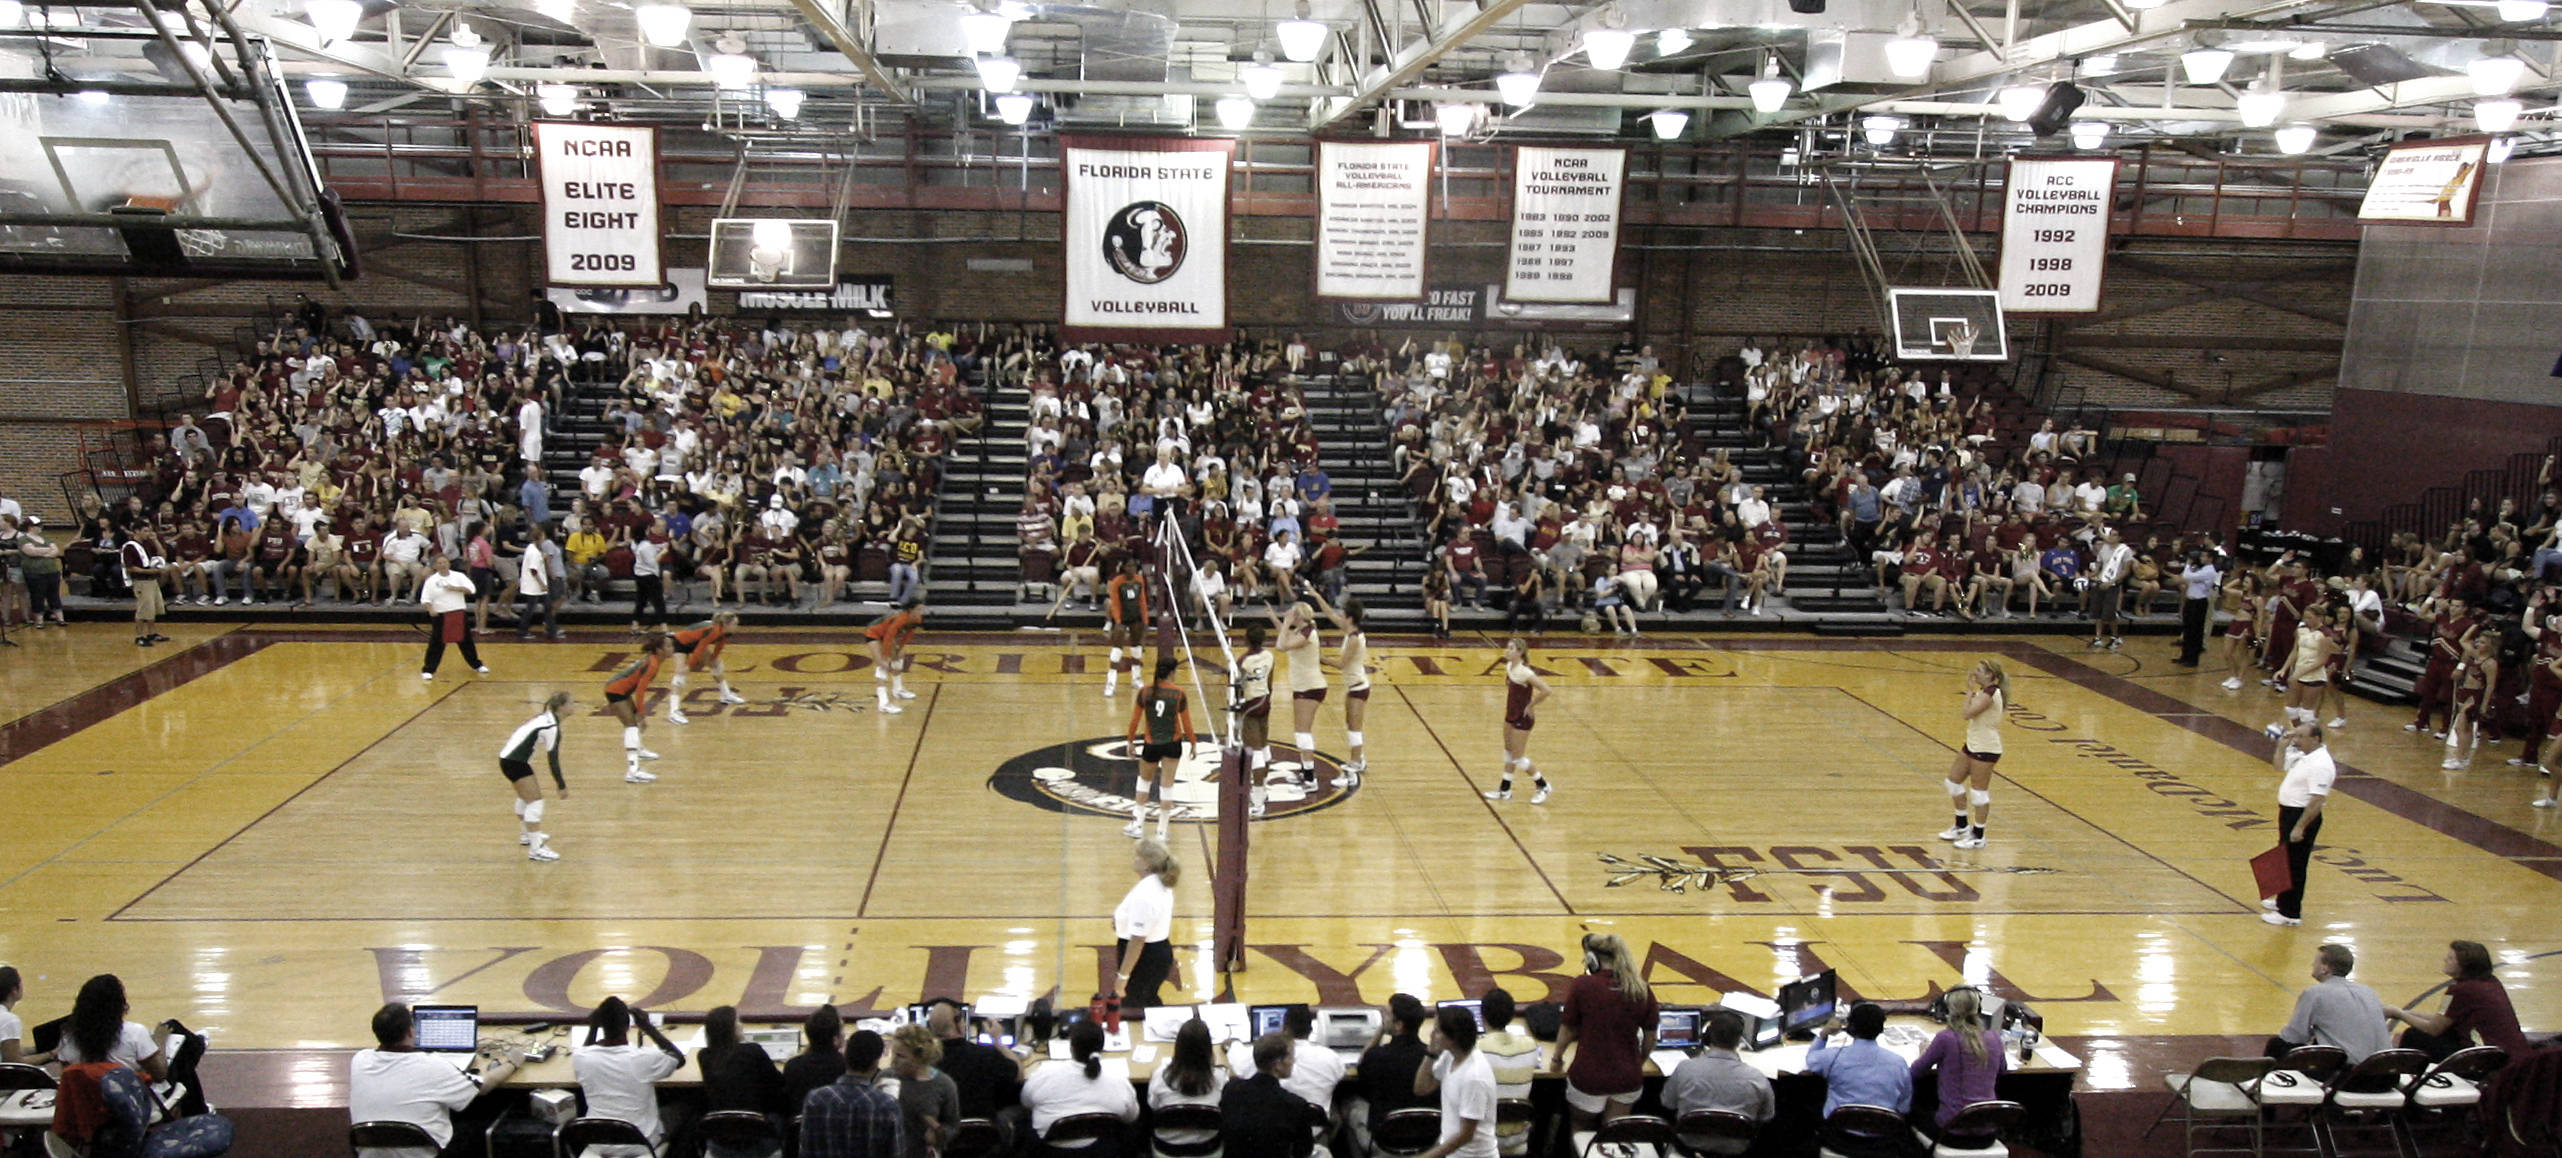 Packed house at Tully gym for FSU vs Miami 9/14/11